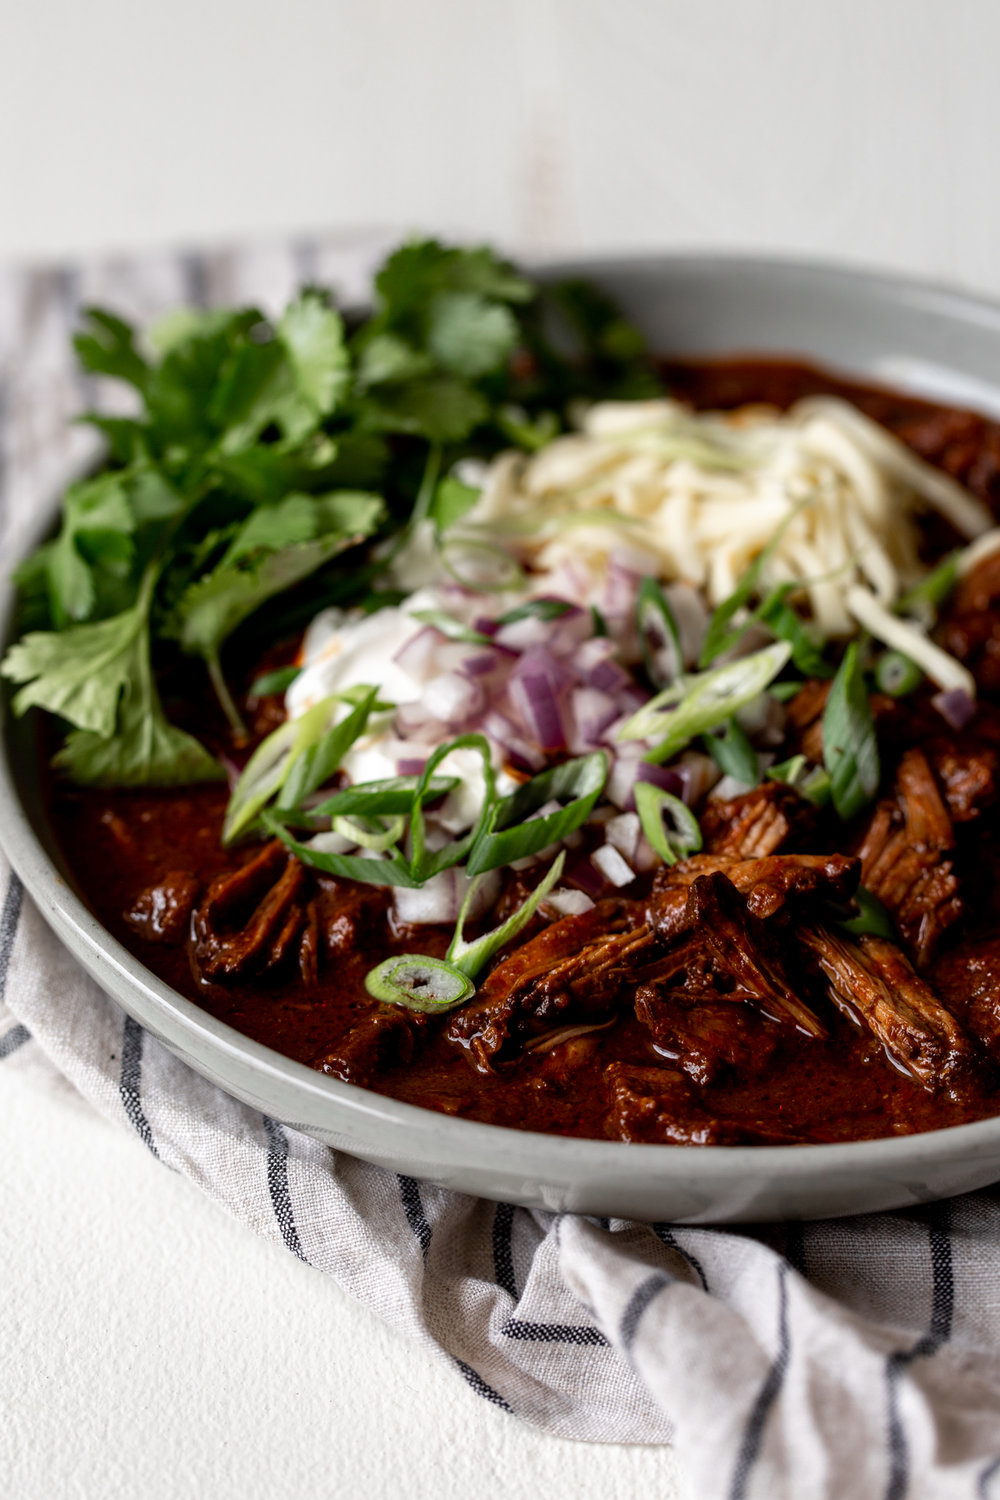 This chili con carne, a Texas-style braised short rib chili recipe -  builds smoky heat from the roasted guajillo, ancho and arbol chilies.